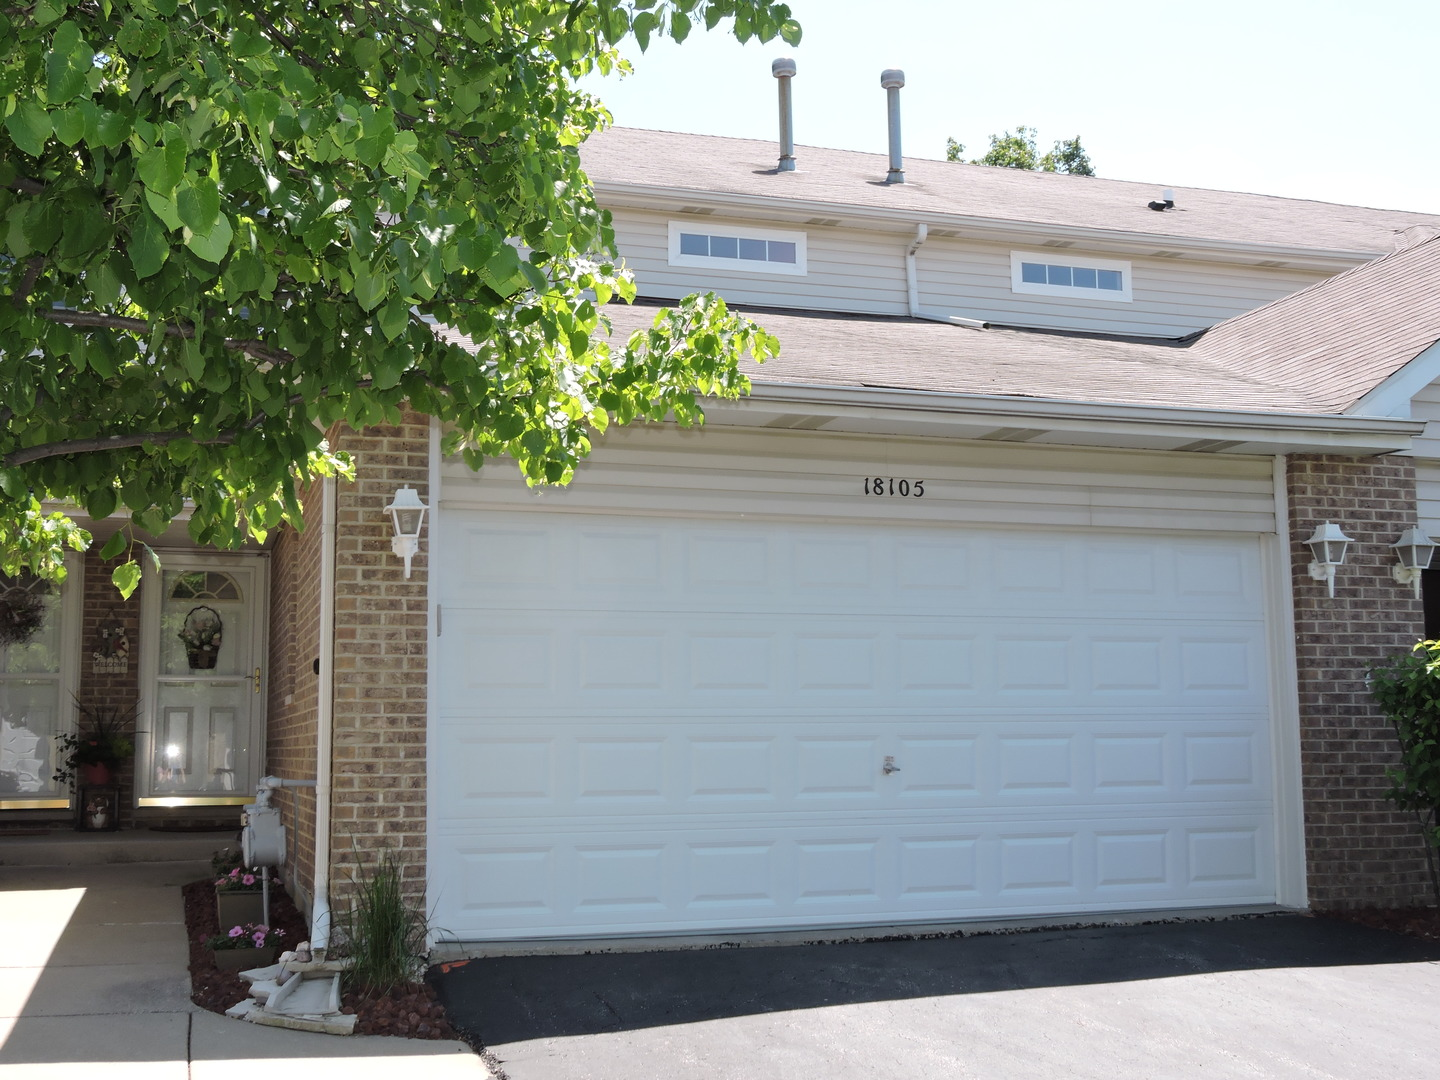 Photo of 18105 Mager Drive  TINLEY PARK  IL